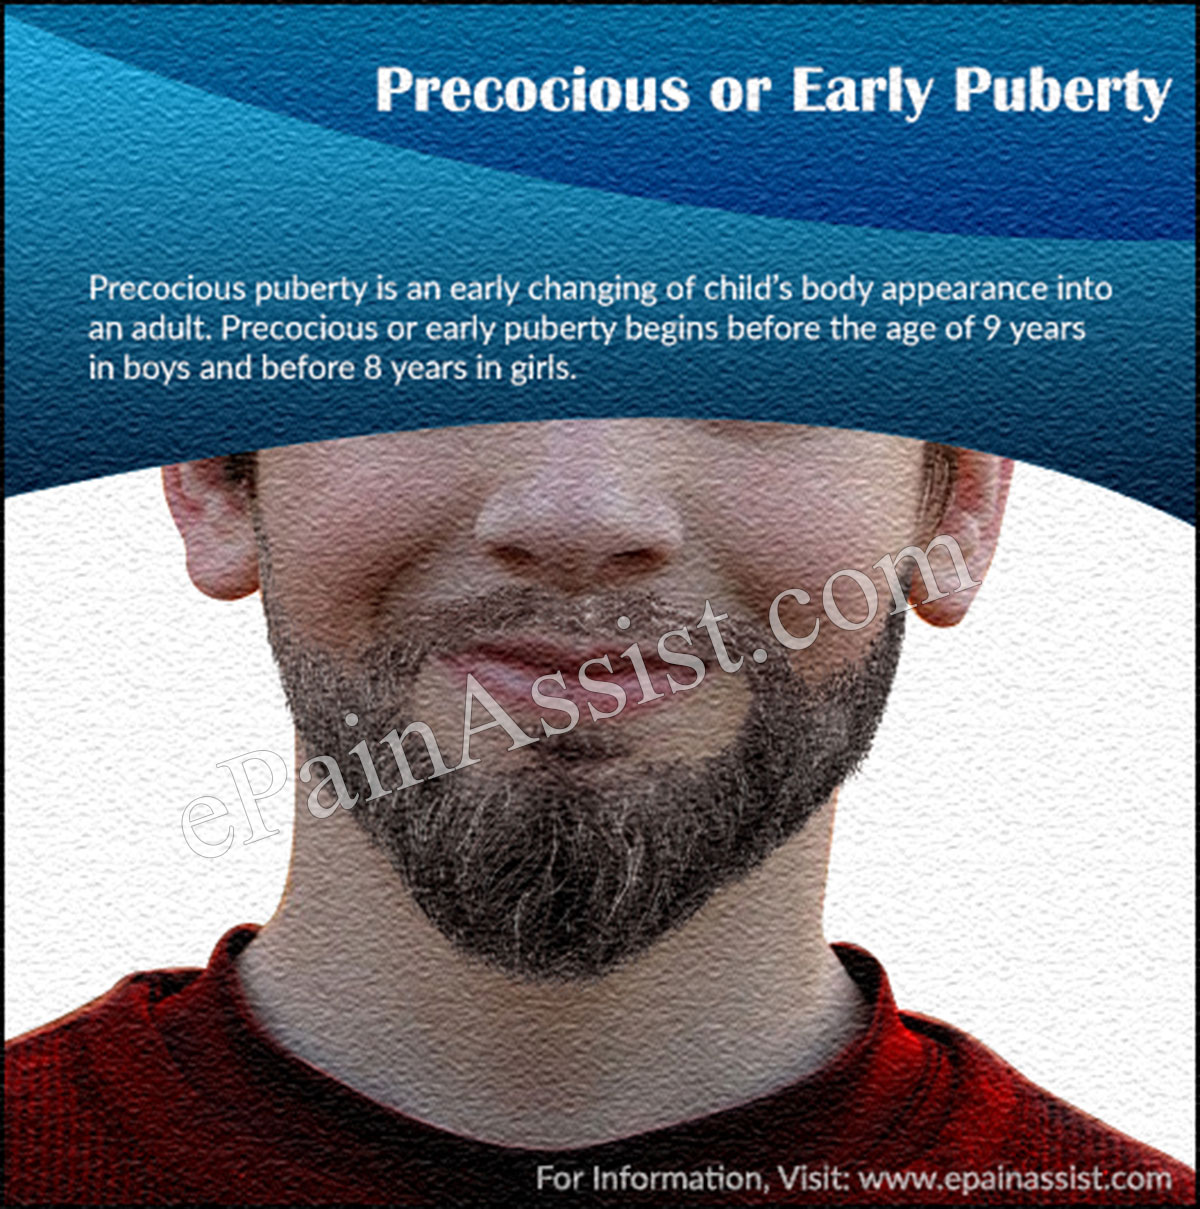 Precocious or Early Puberty